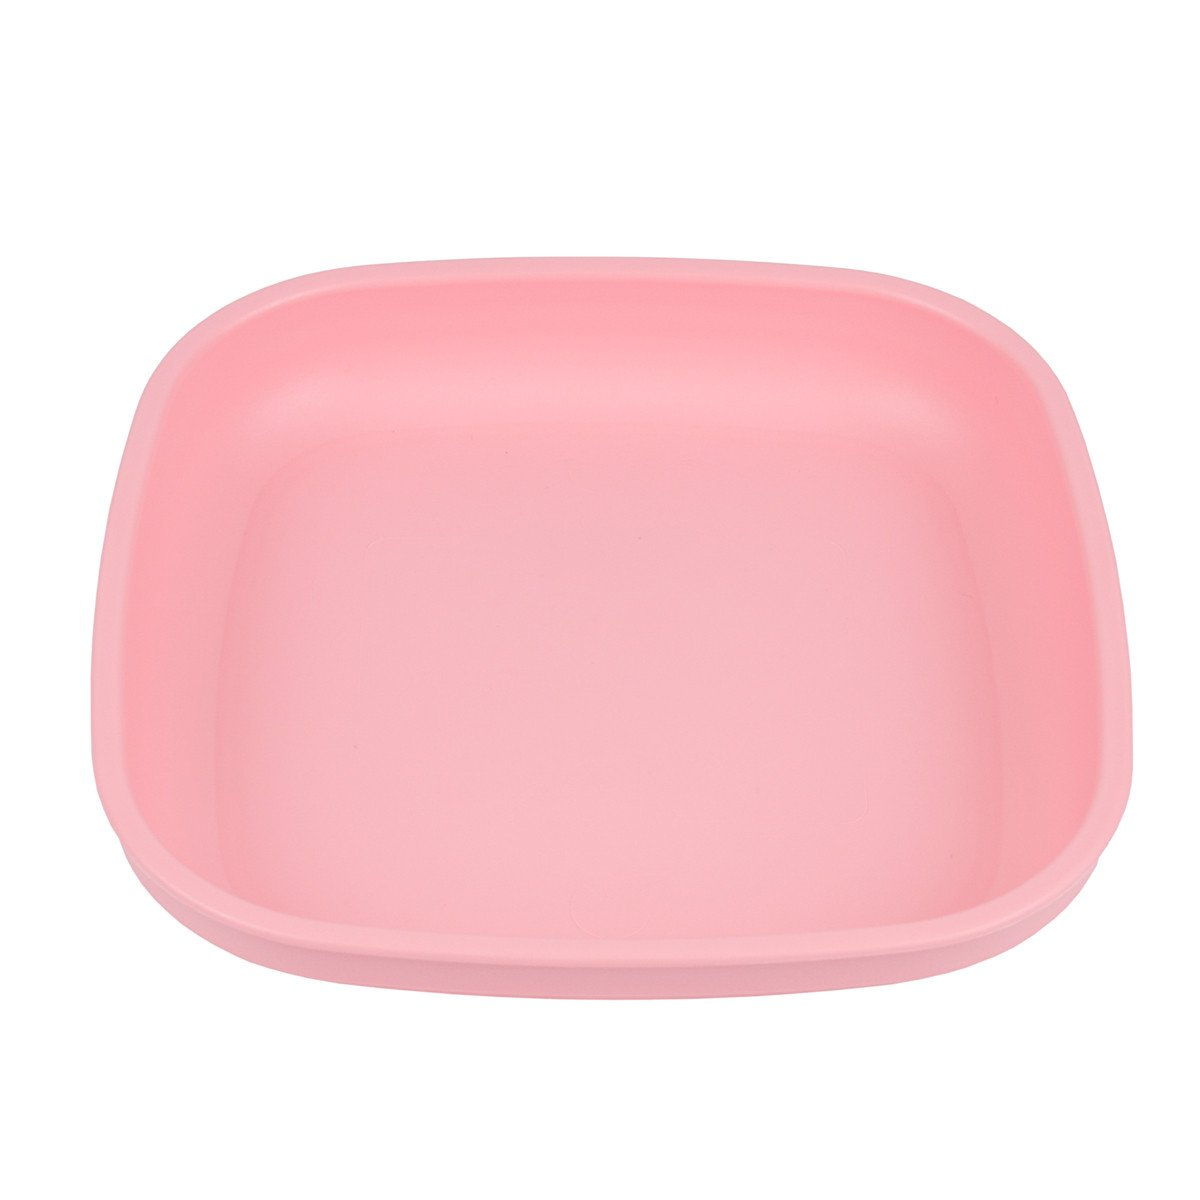 Replay Plate  Baby Pink - Replay - Little Earth Nest - 3